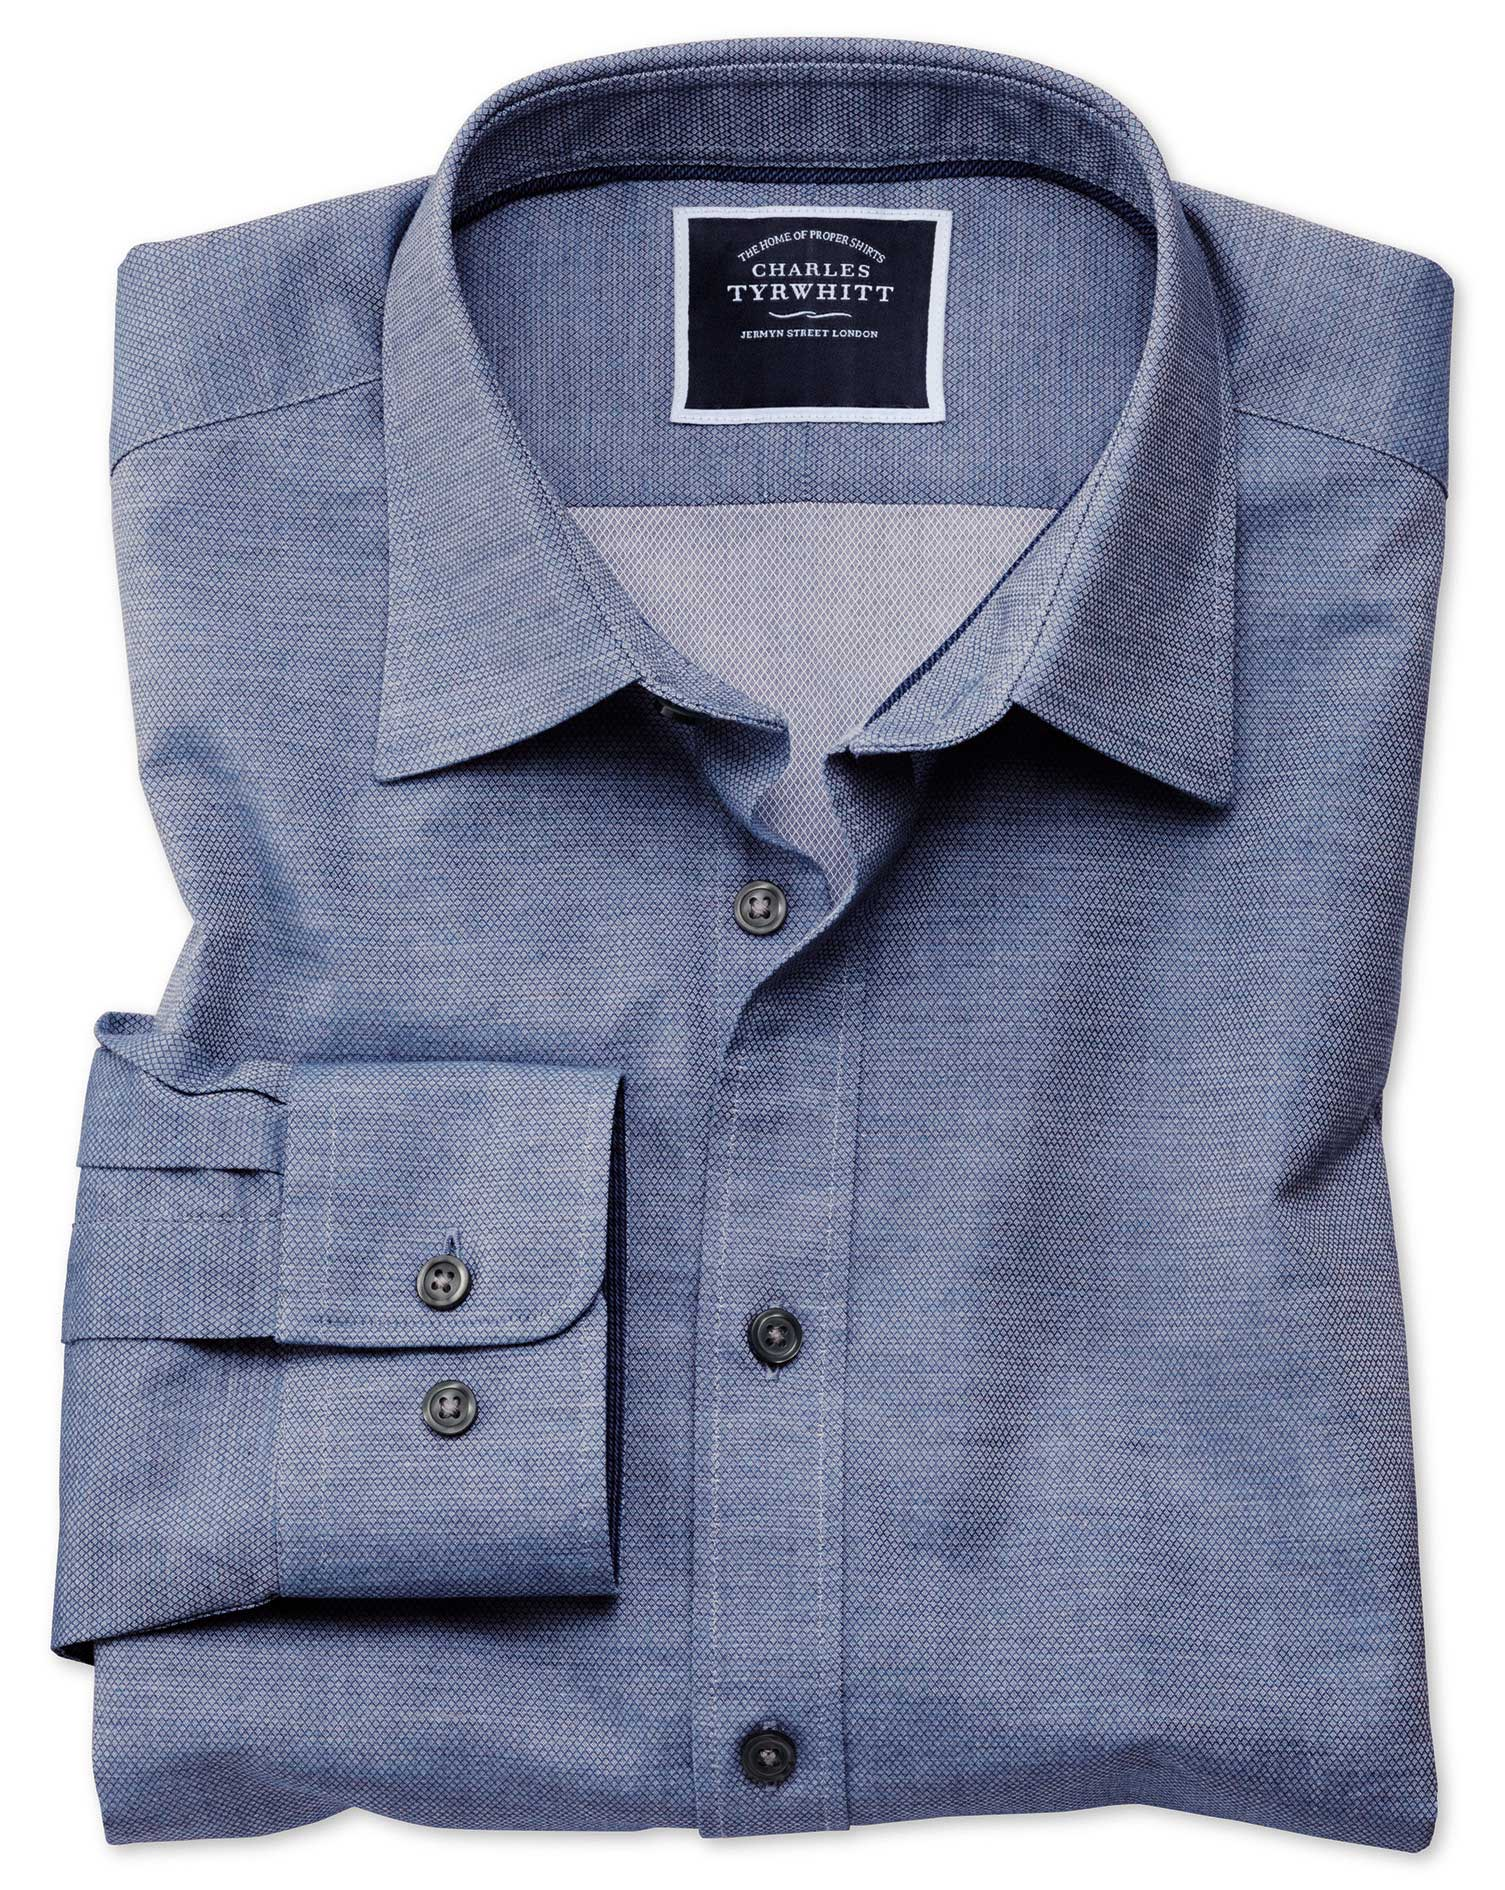 Slim Fit Blue Soft Textured Cotton Shirt Single Cuff Size XS by Charles Tyrwhitt